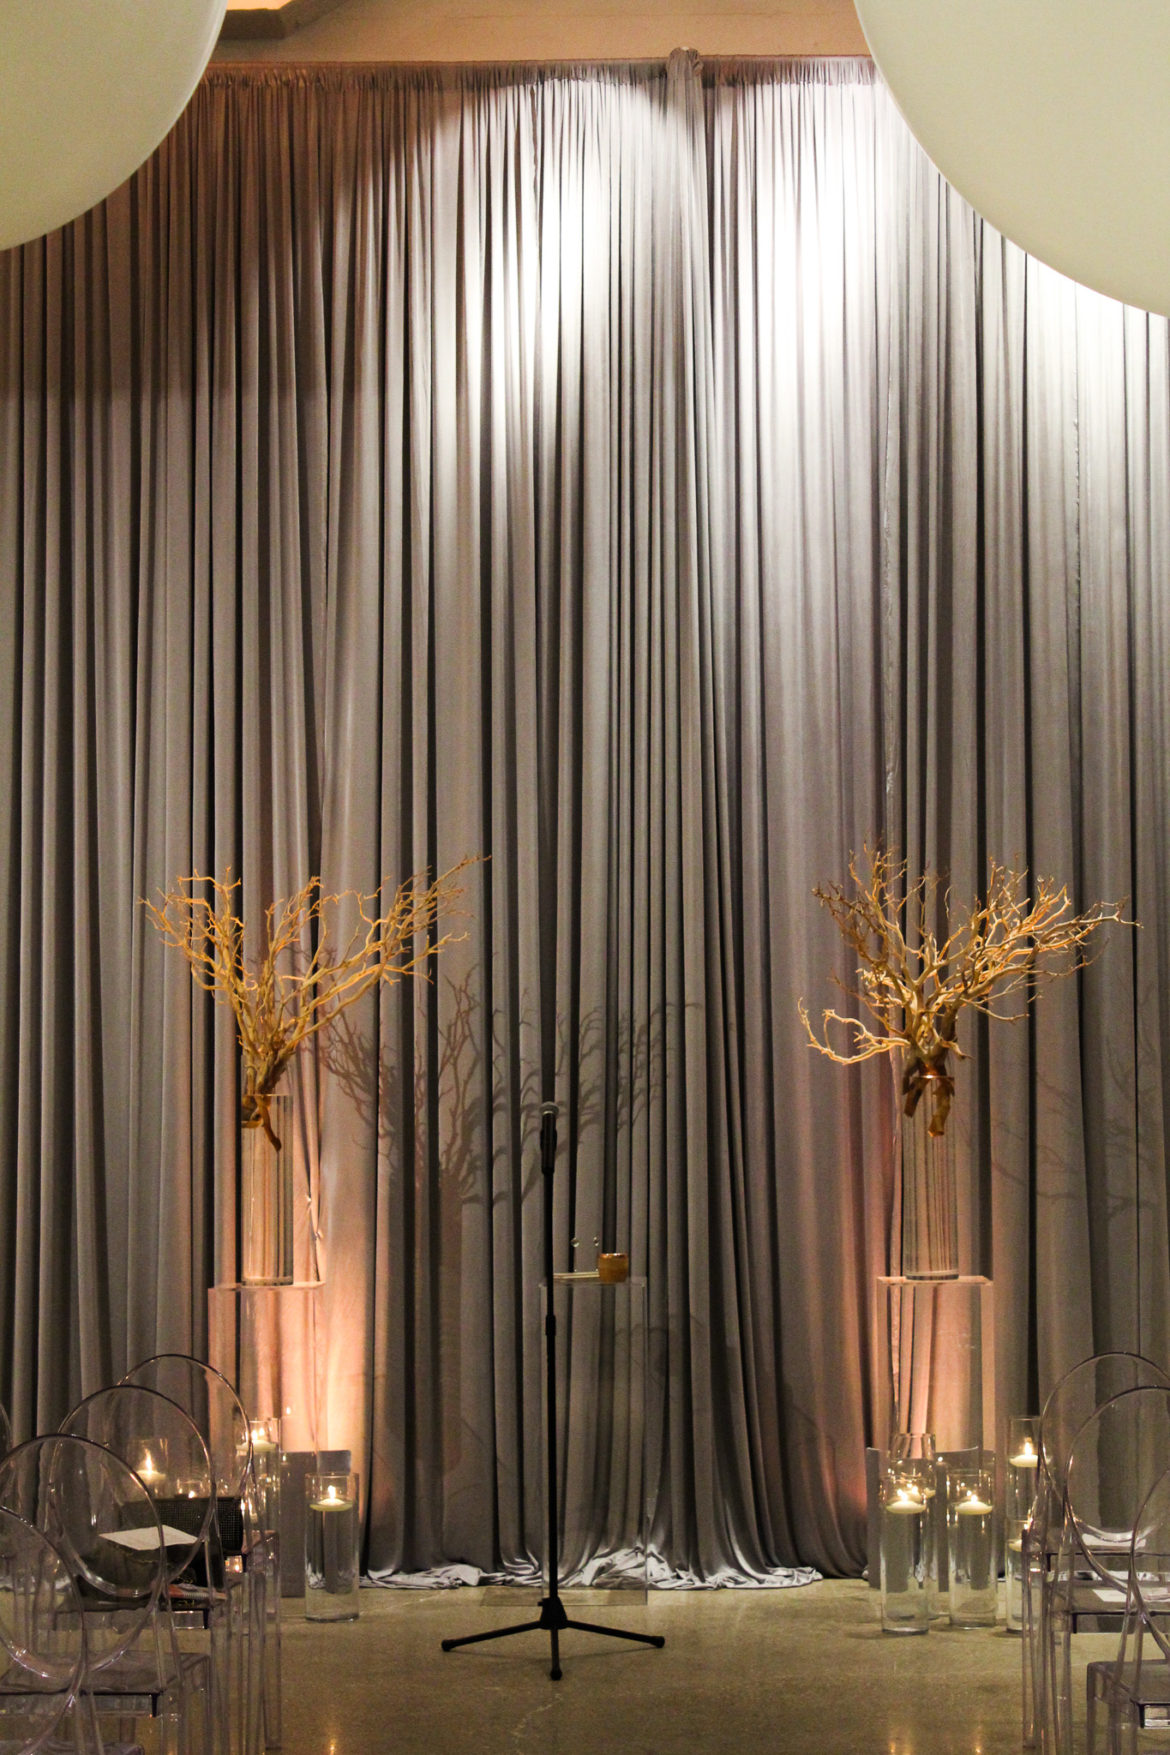 Elegant_Event_Lighting_Chicago_Chez_Wedding_Ceremony_Silver_Draping_Peach_LED_Uplighting